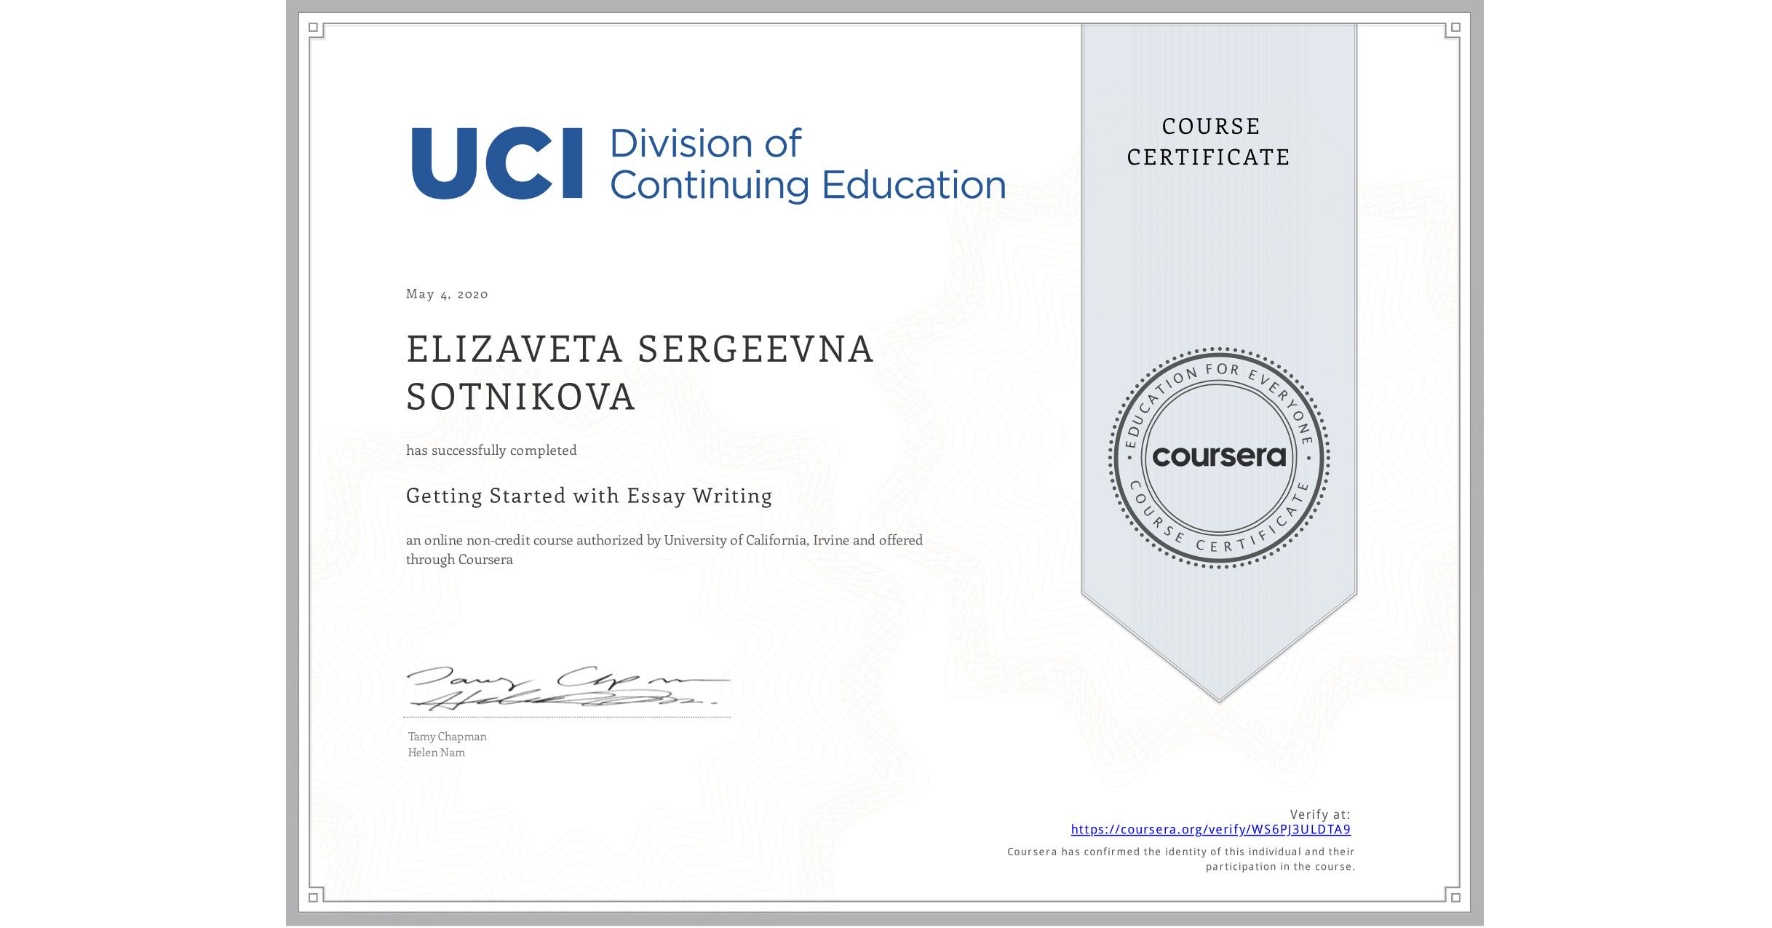 View certificate for ELIZAVETA SERGEEVNA  SOTNIKOVA, Getting Started with Essay Writing, an online non-credit course authorized by University of California, Irvine and offered through Coursera